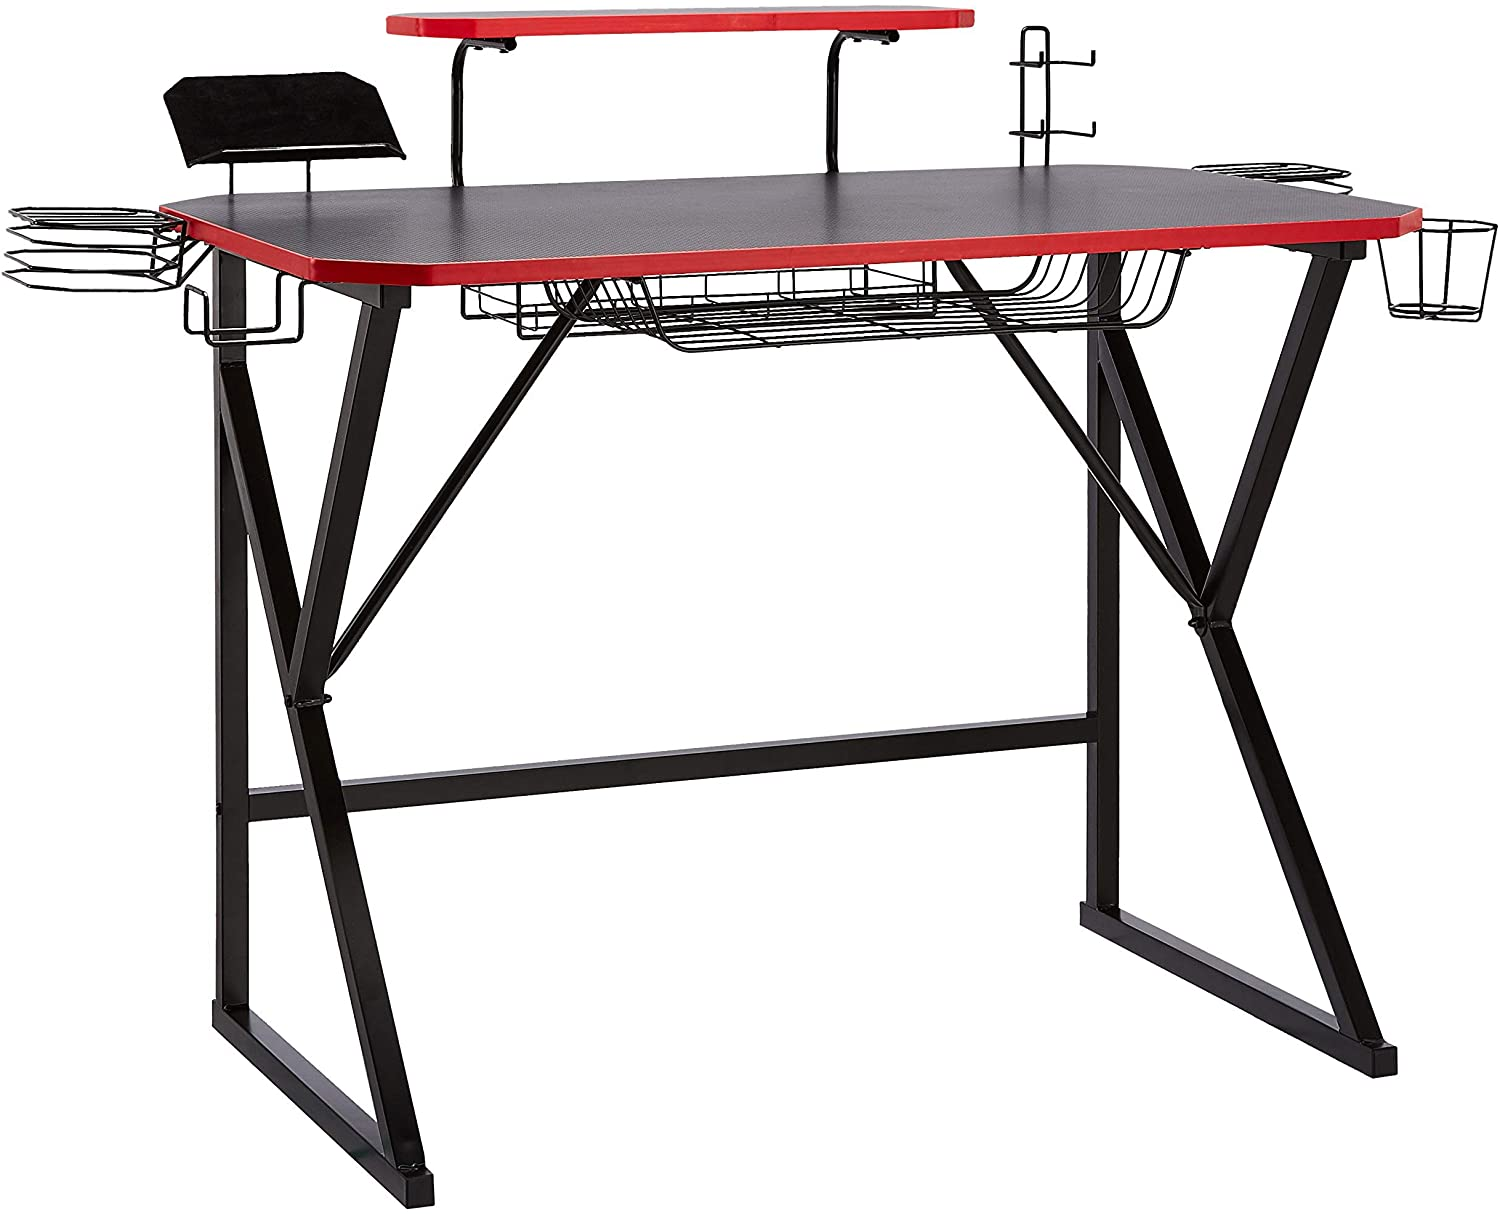 Amazon Basics Gaming Computer Desk with Storage for Controller, Headphone & Speaker – Red